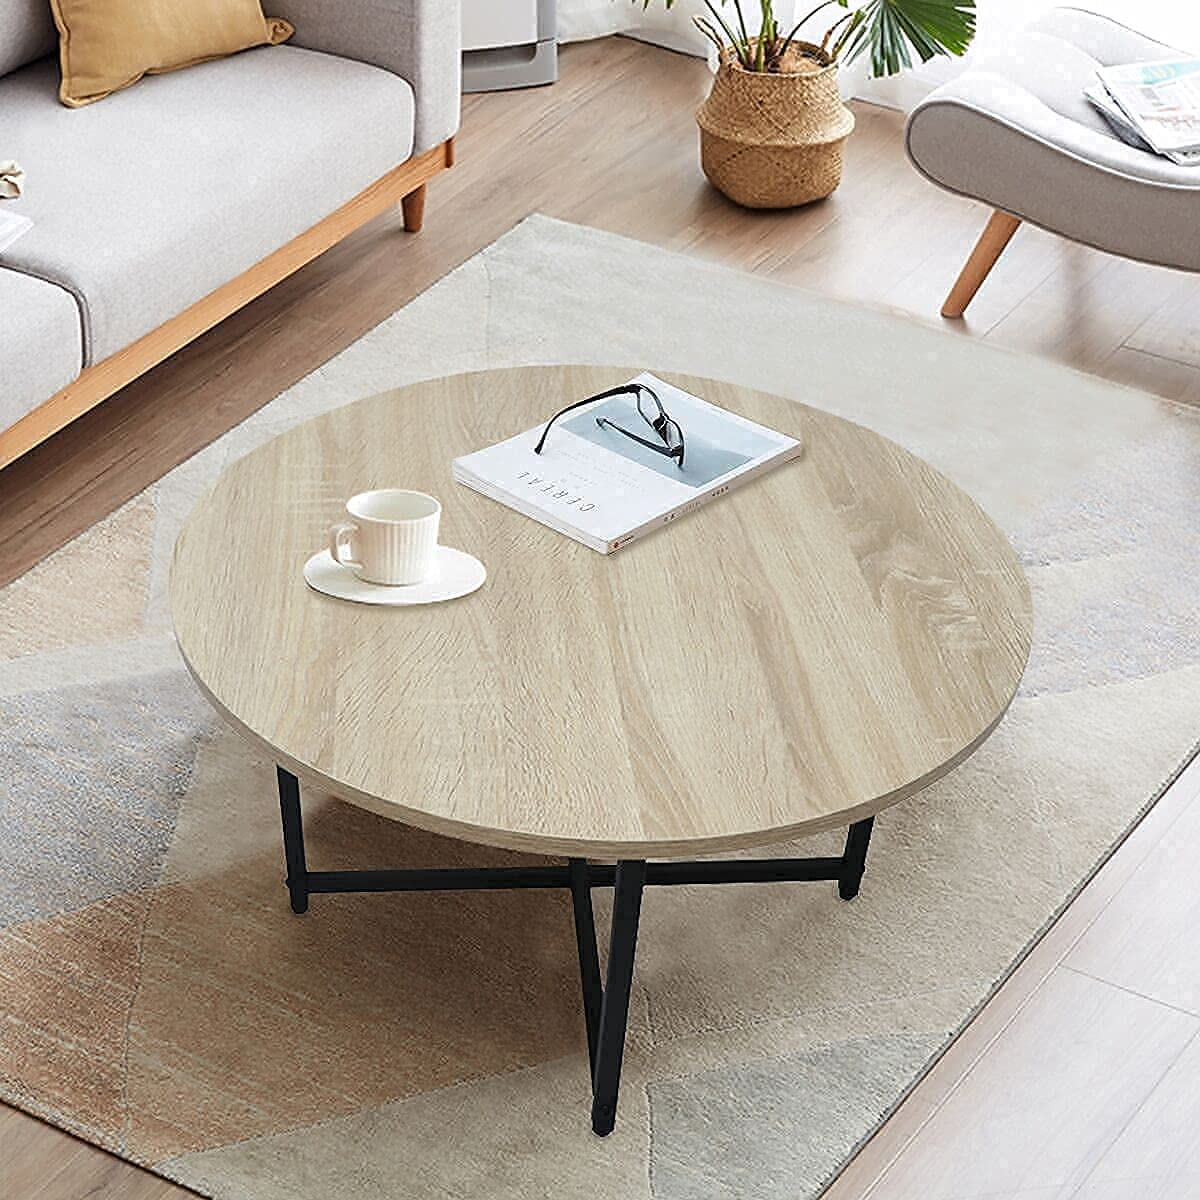 TOYSINTHEBOX Round Coffee Tables, Accent Table Sofa Table Tea Table for Living Room, Office Desk, Balcony, Wood Desktop and Metal Legs, 23.6 Inches: Kitchen & Dining